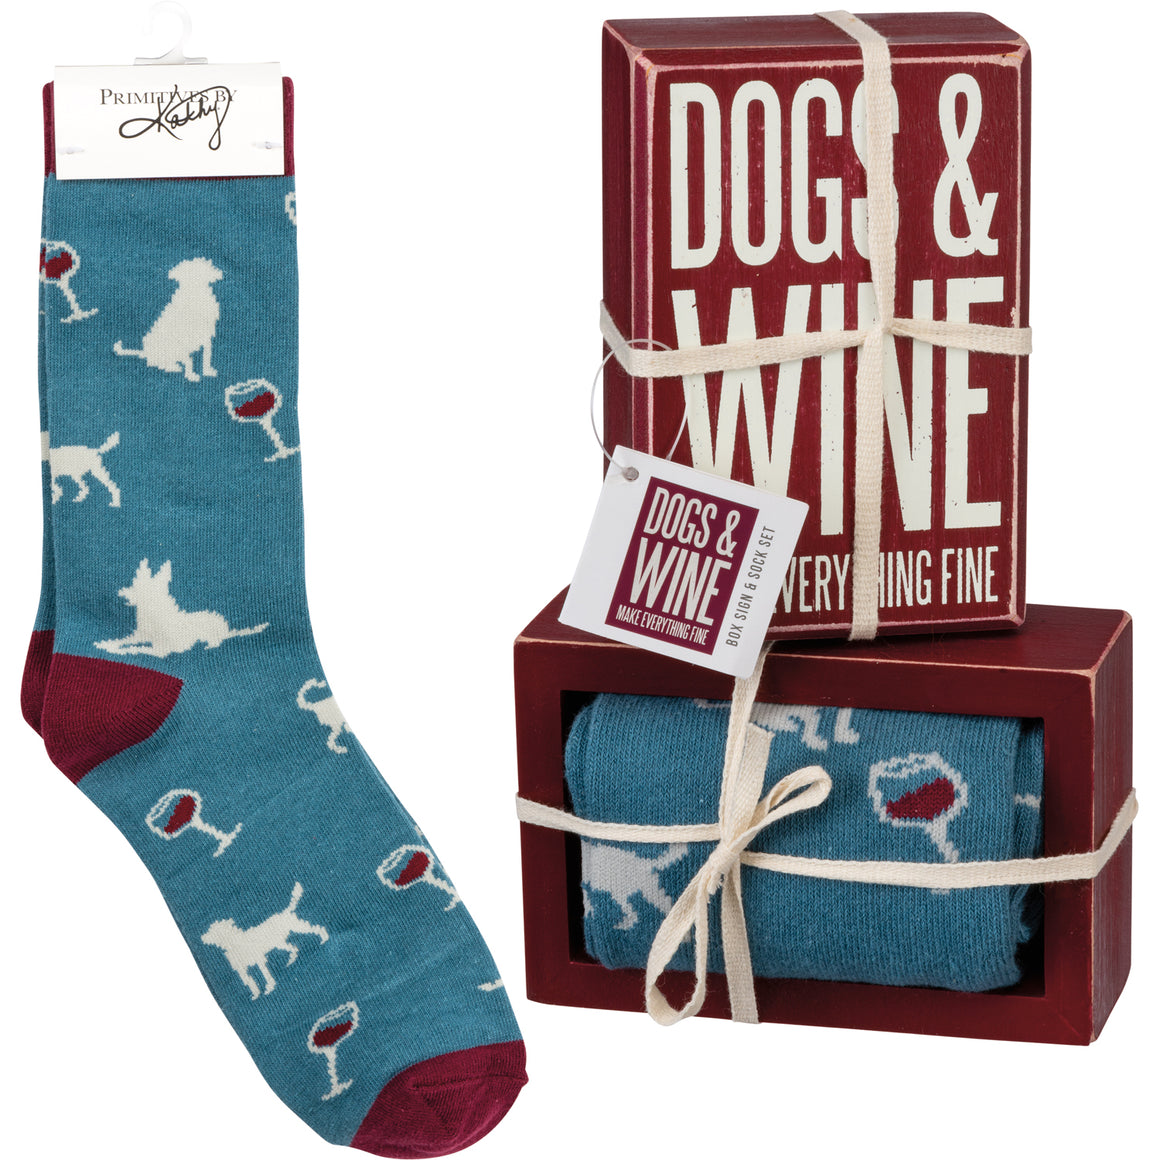 Dogs & Wine Make Everything Fine Socks & Box Sign Gift Set